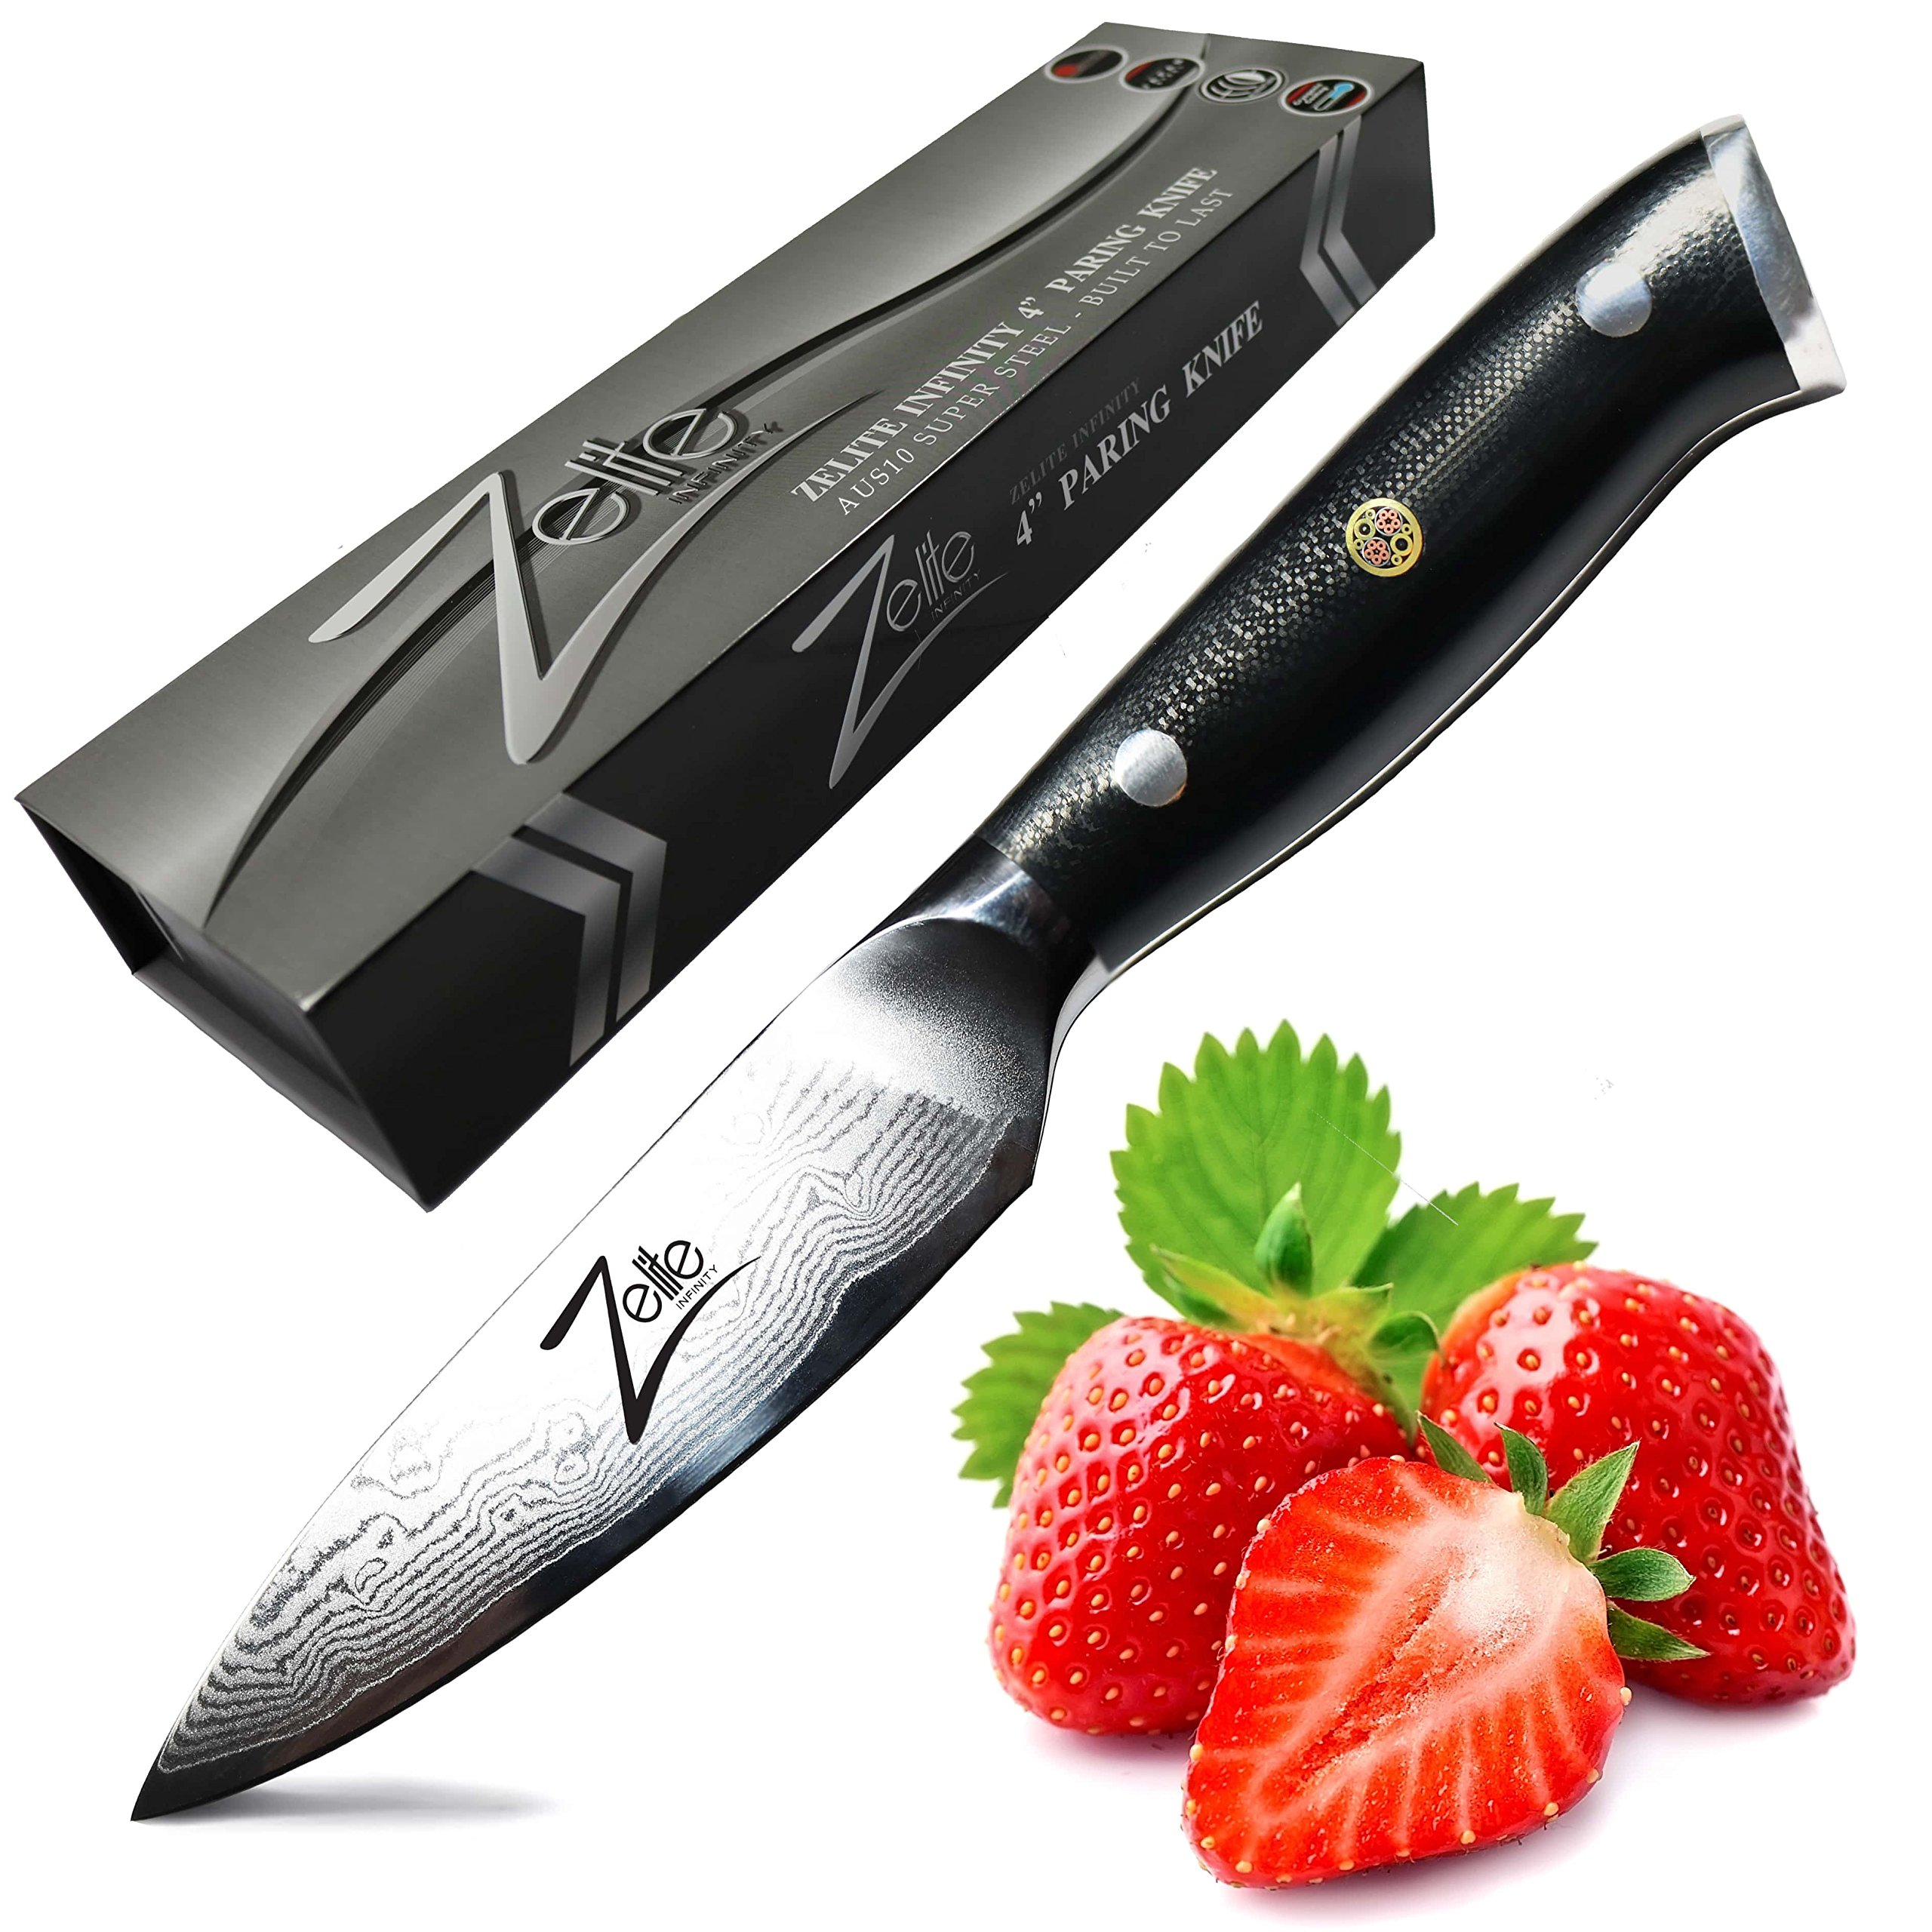 ZELITE INFINITY Paring Knife 4 inch - Alpha-Royal Series - Best Quality Japanese AUS10 Super Steel 67 Layer High Carbon Stainless Steel Razor-Sharp Superb Edge Retention, Stain & Corrosion Resistant